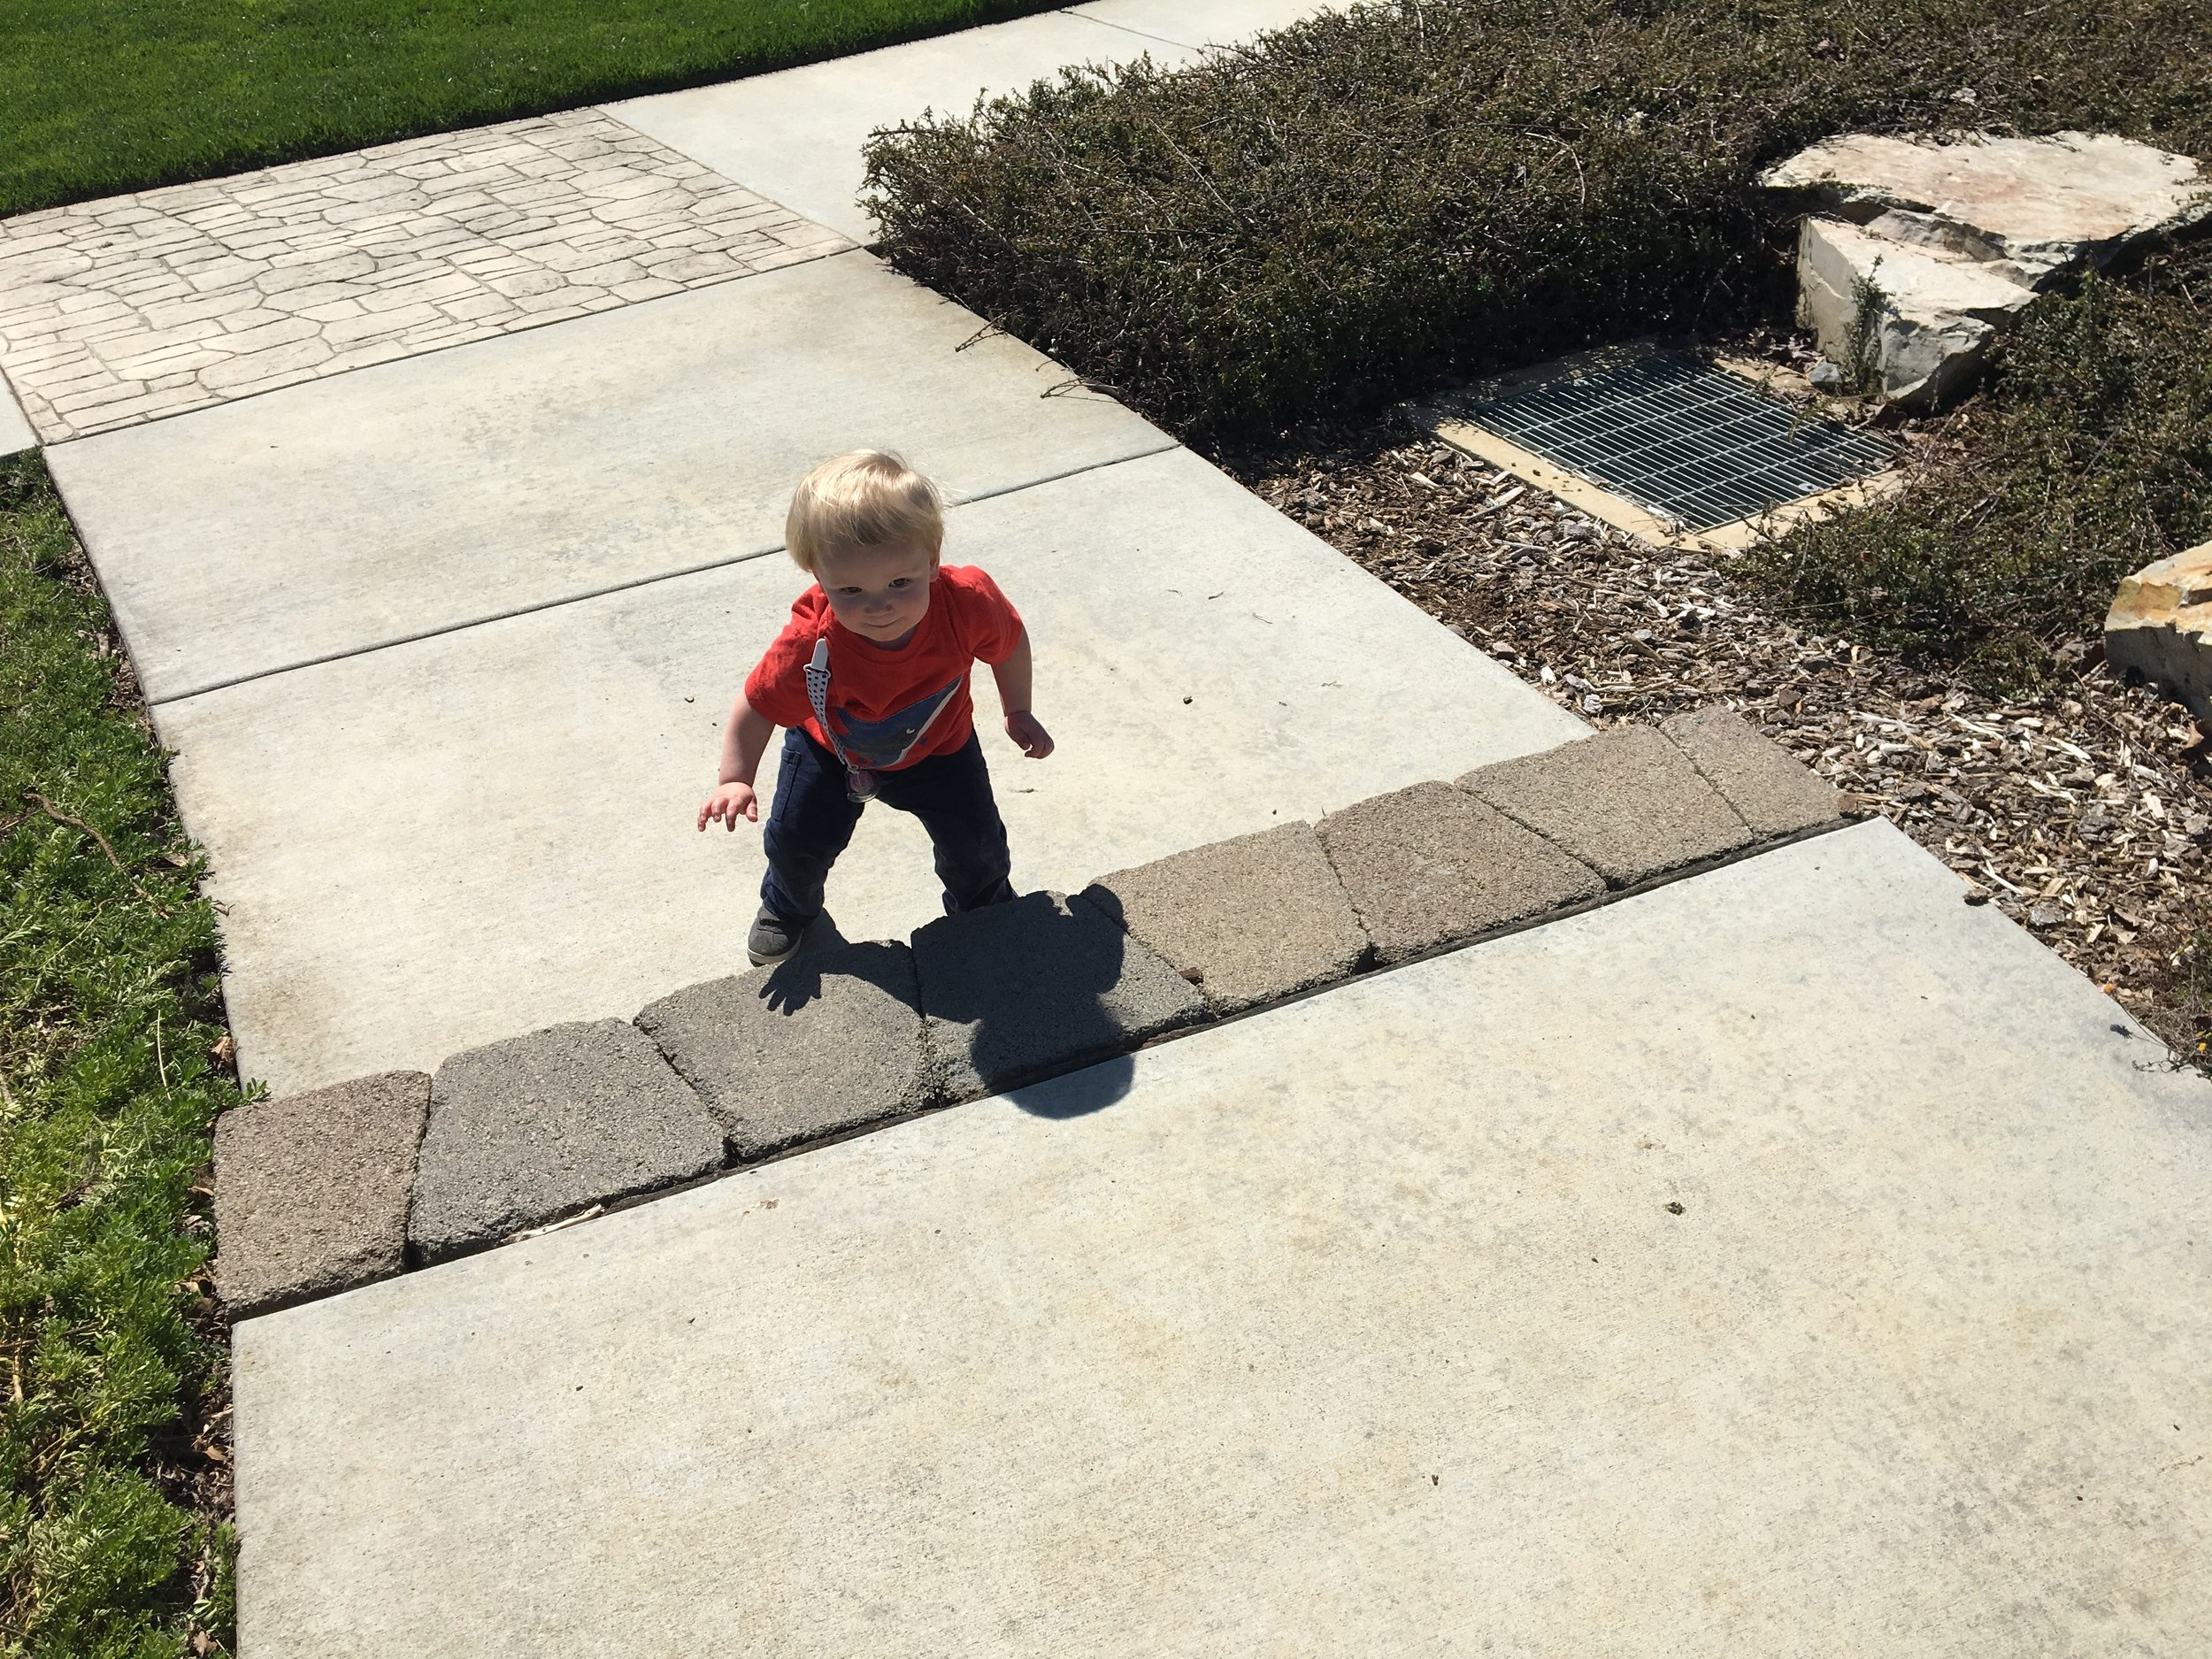 Toddler on the move